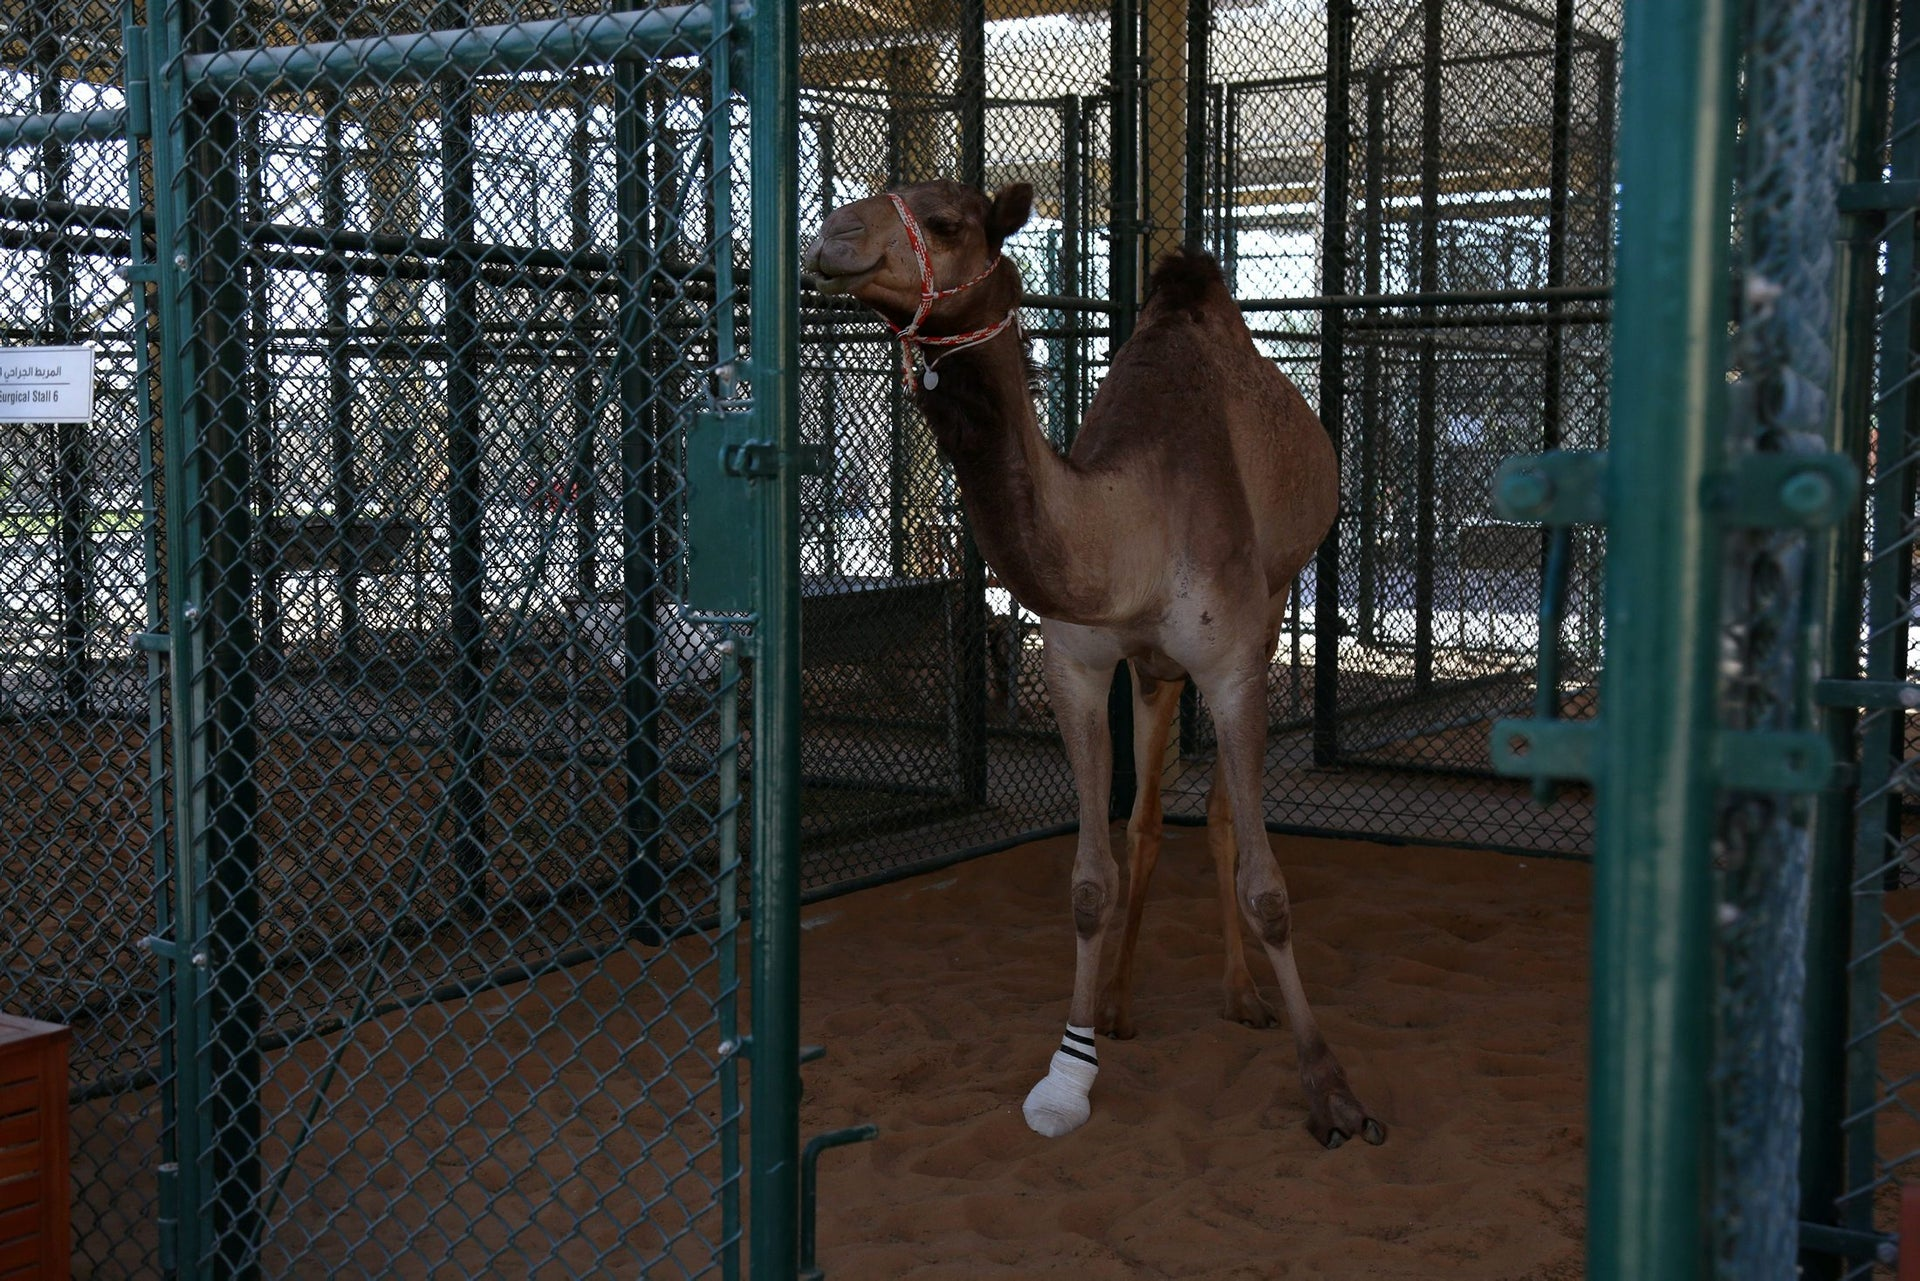 A camel stands in the surgical stall at the Dubai Camel Hospital in Dubai, UAE, December 11, 2017. Picture taken December 11,2017.